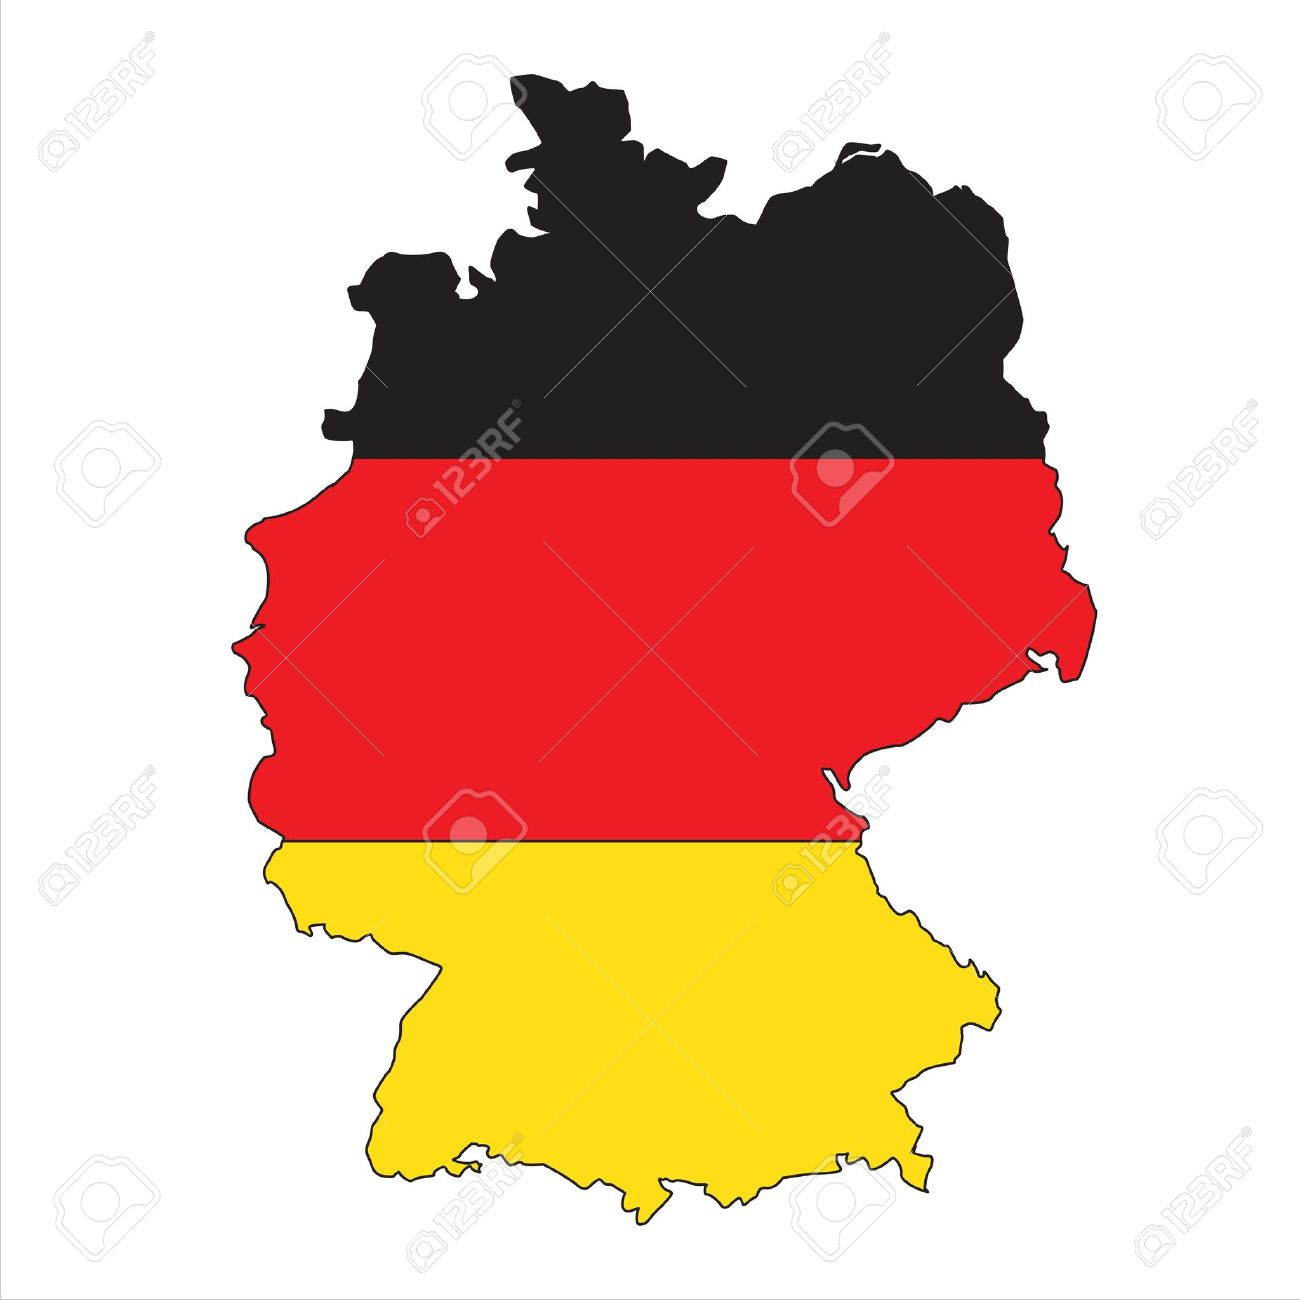 Germany Map With Flag Royalty Free Cliparts Vectors And Stock - Germany map cartoon